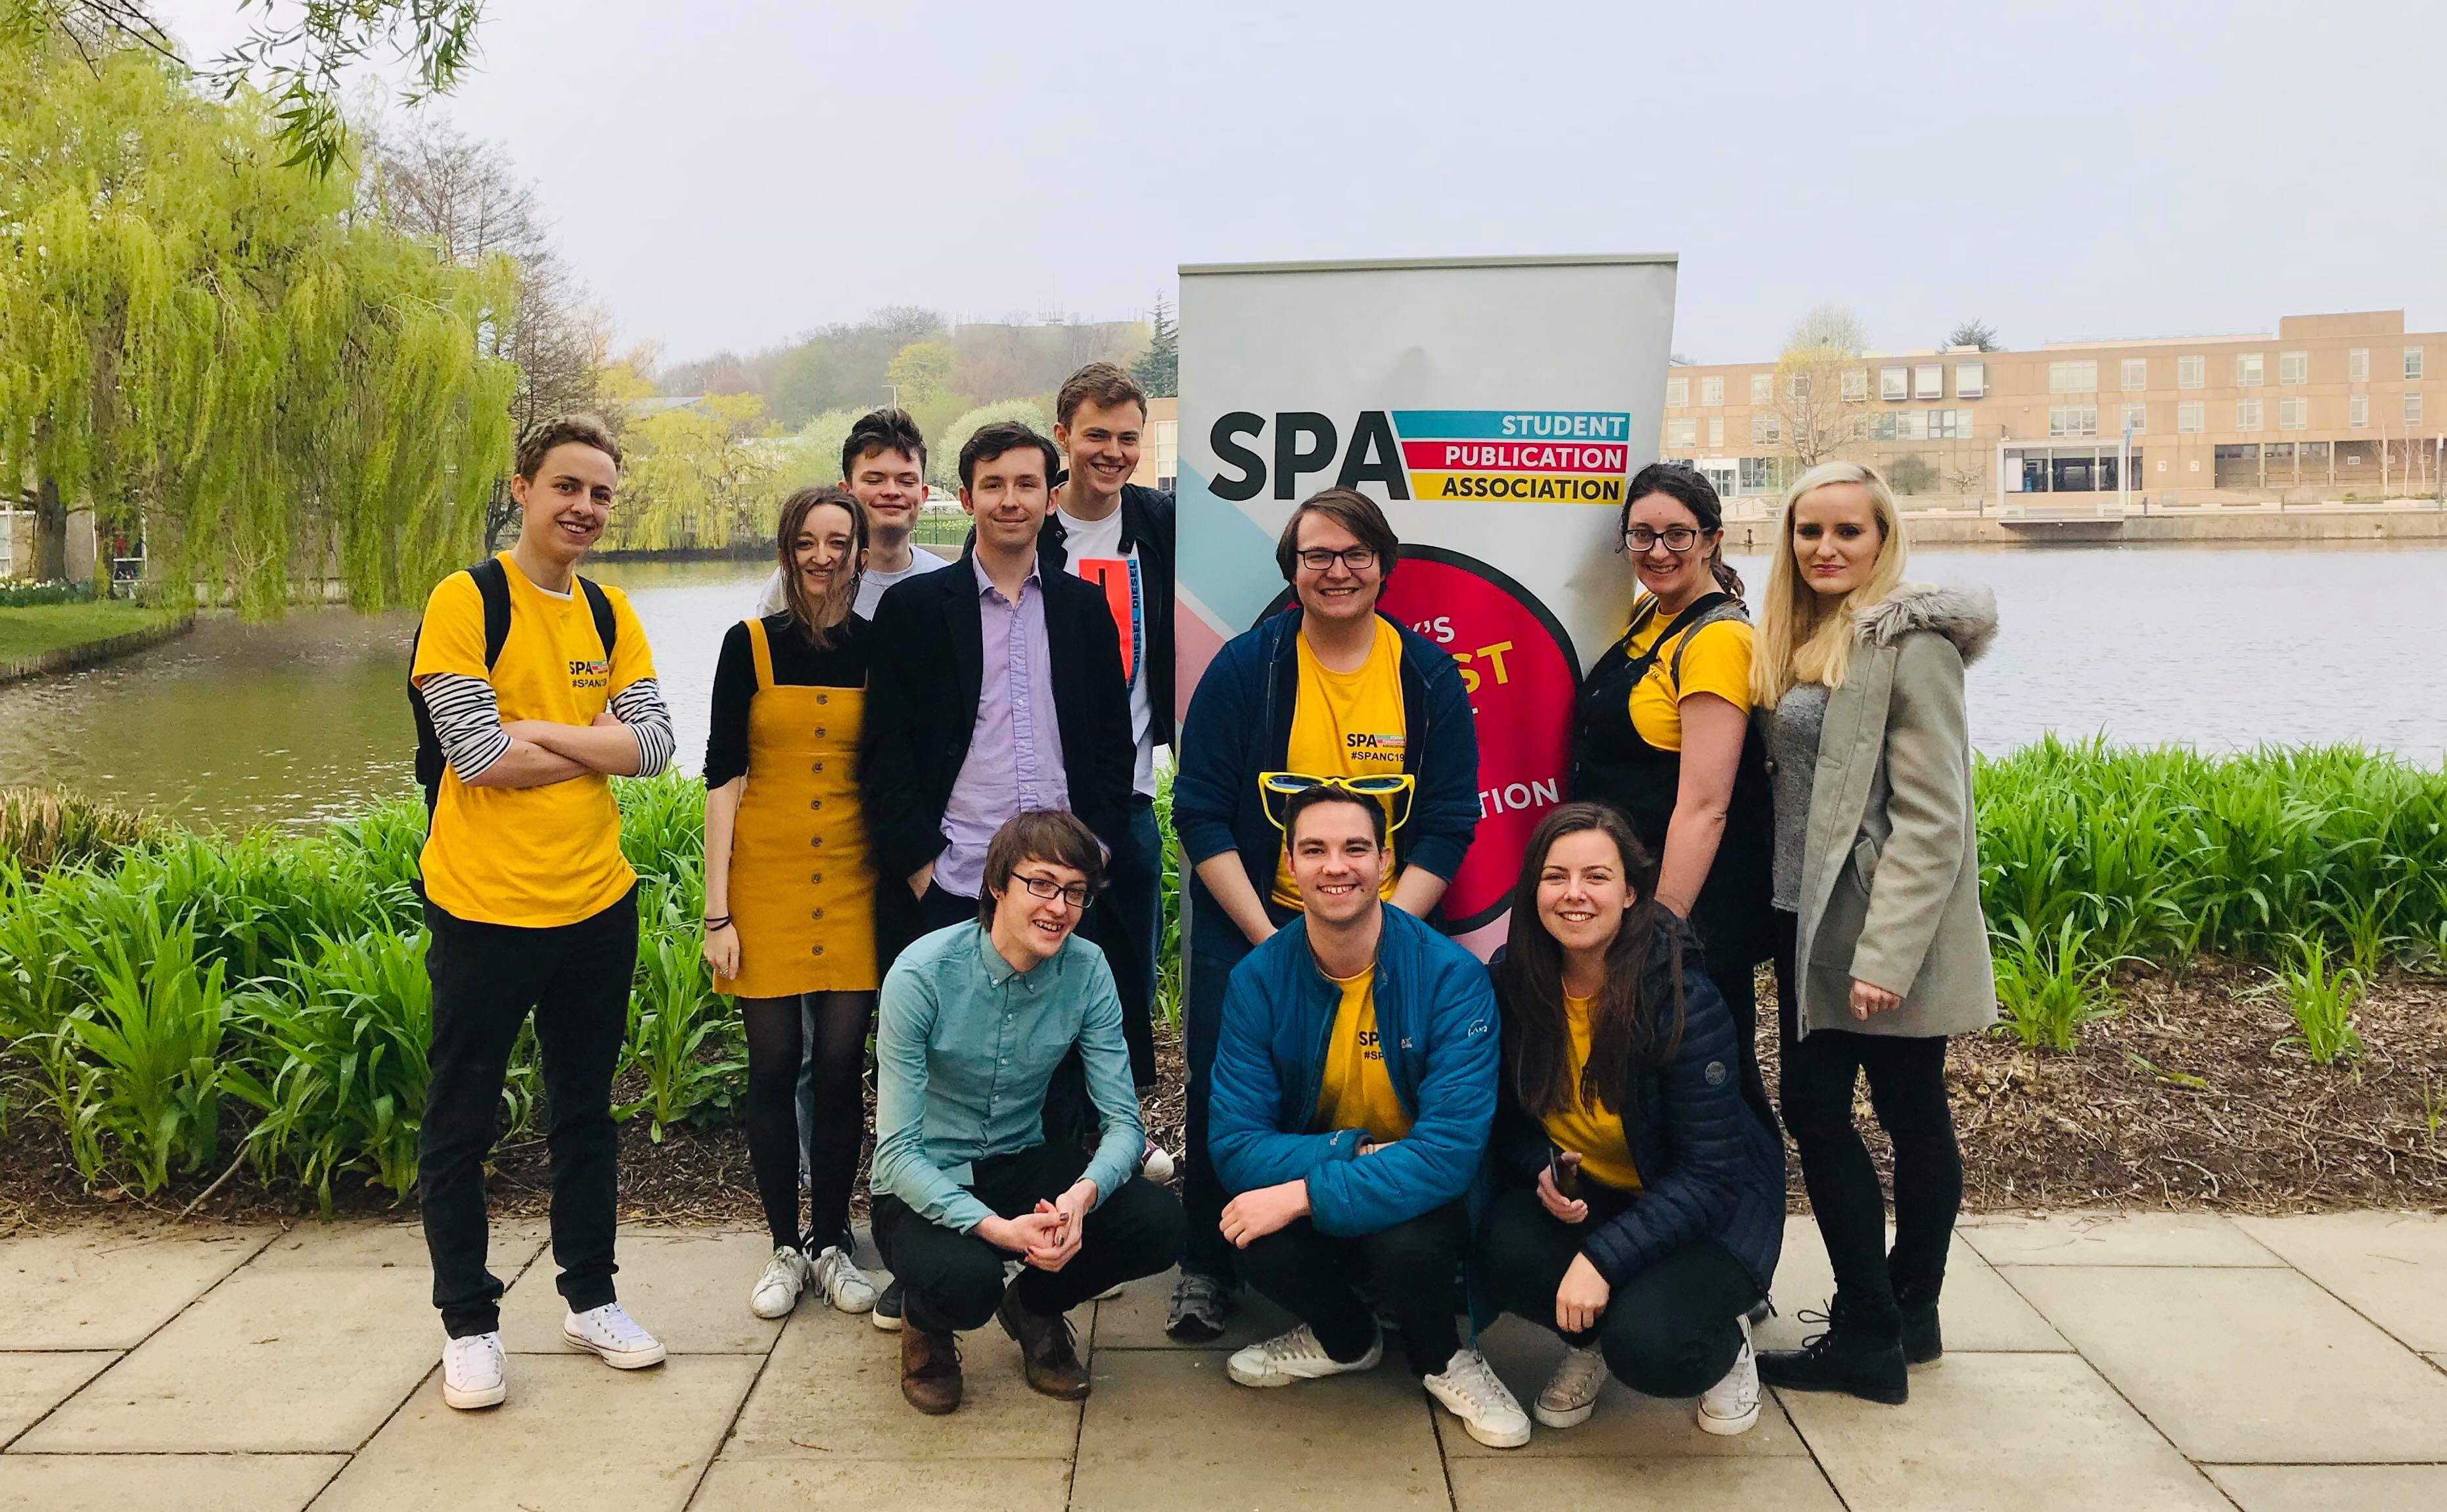 Organiser at the Student Publication Association's National Conference in York (April 2019)